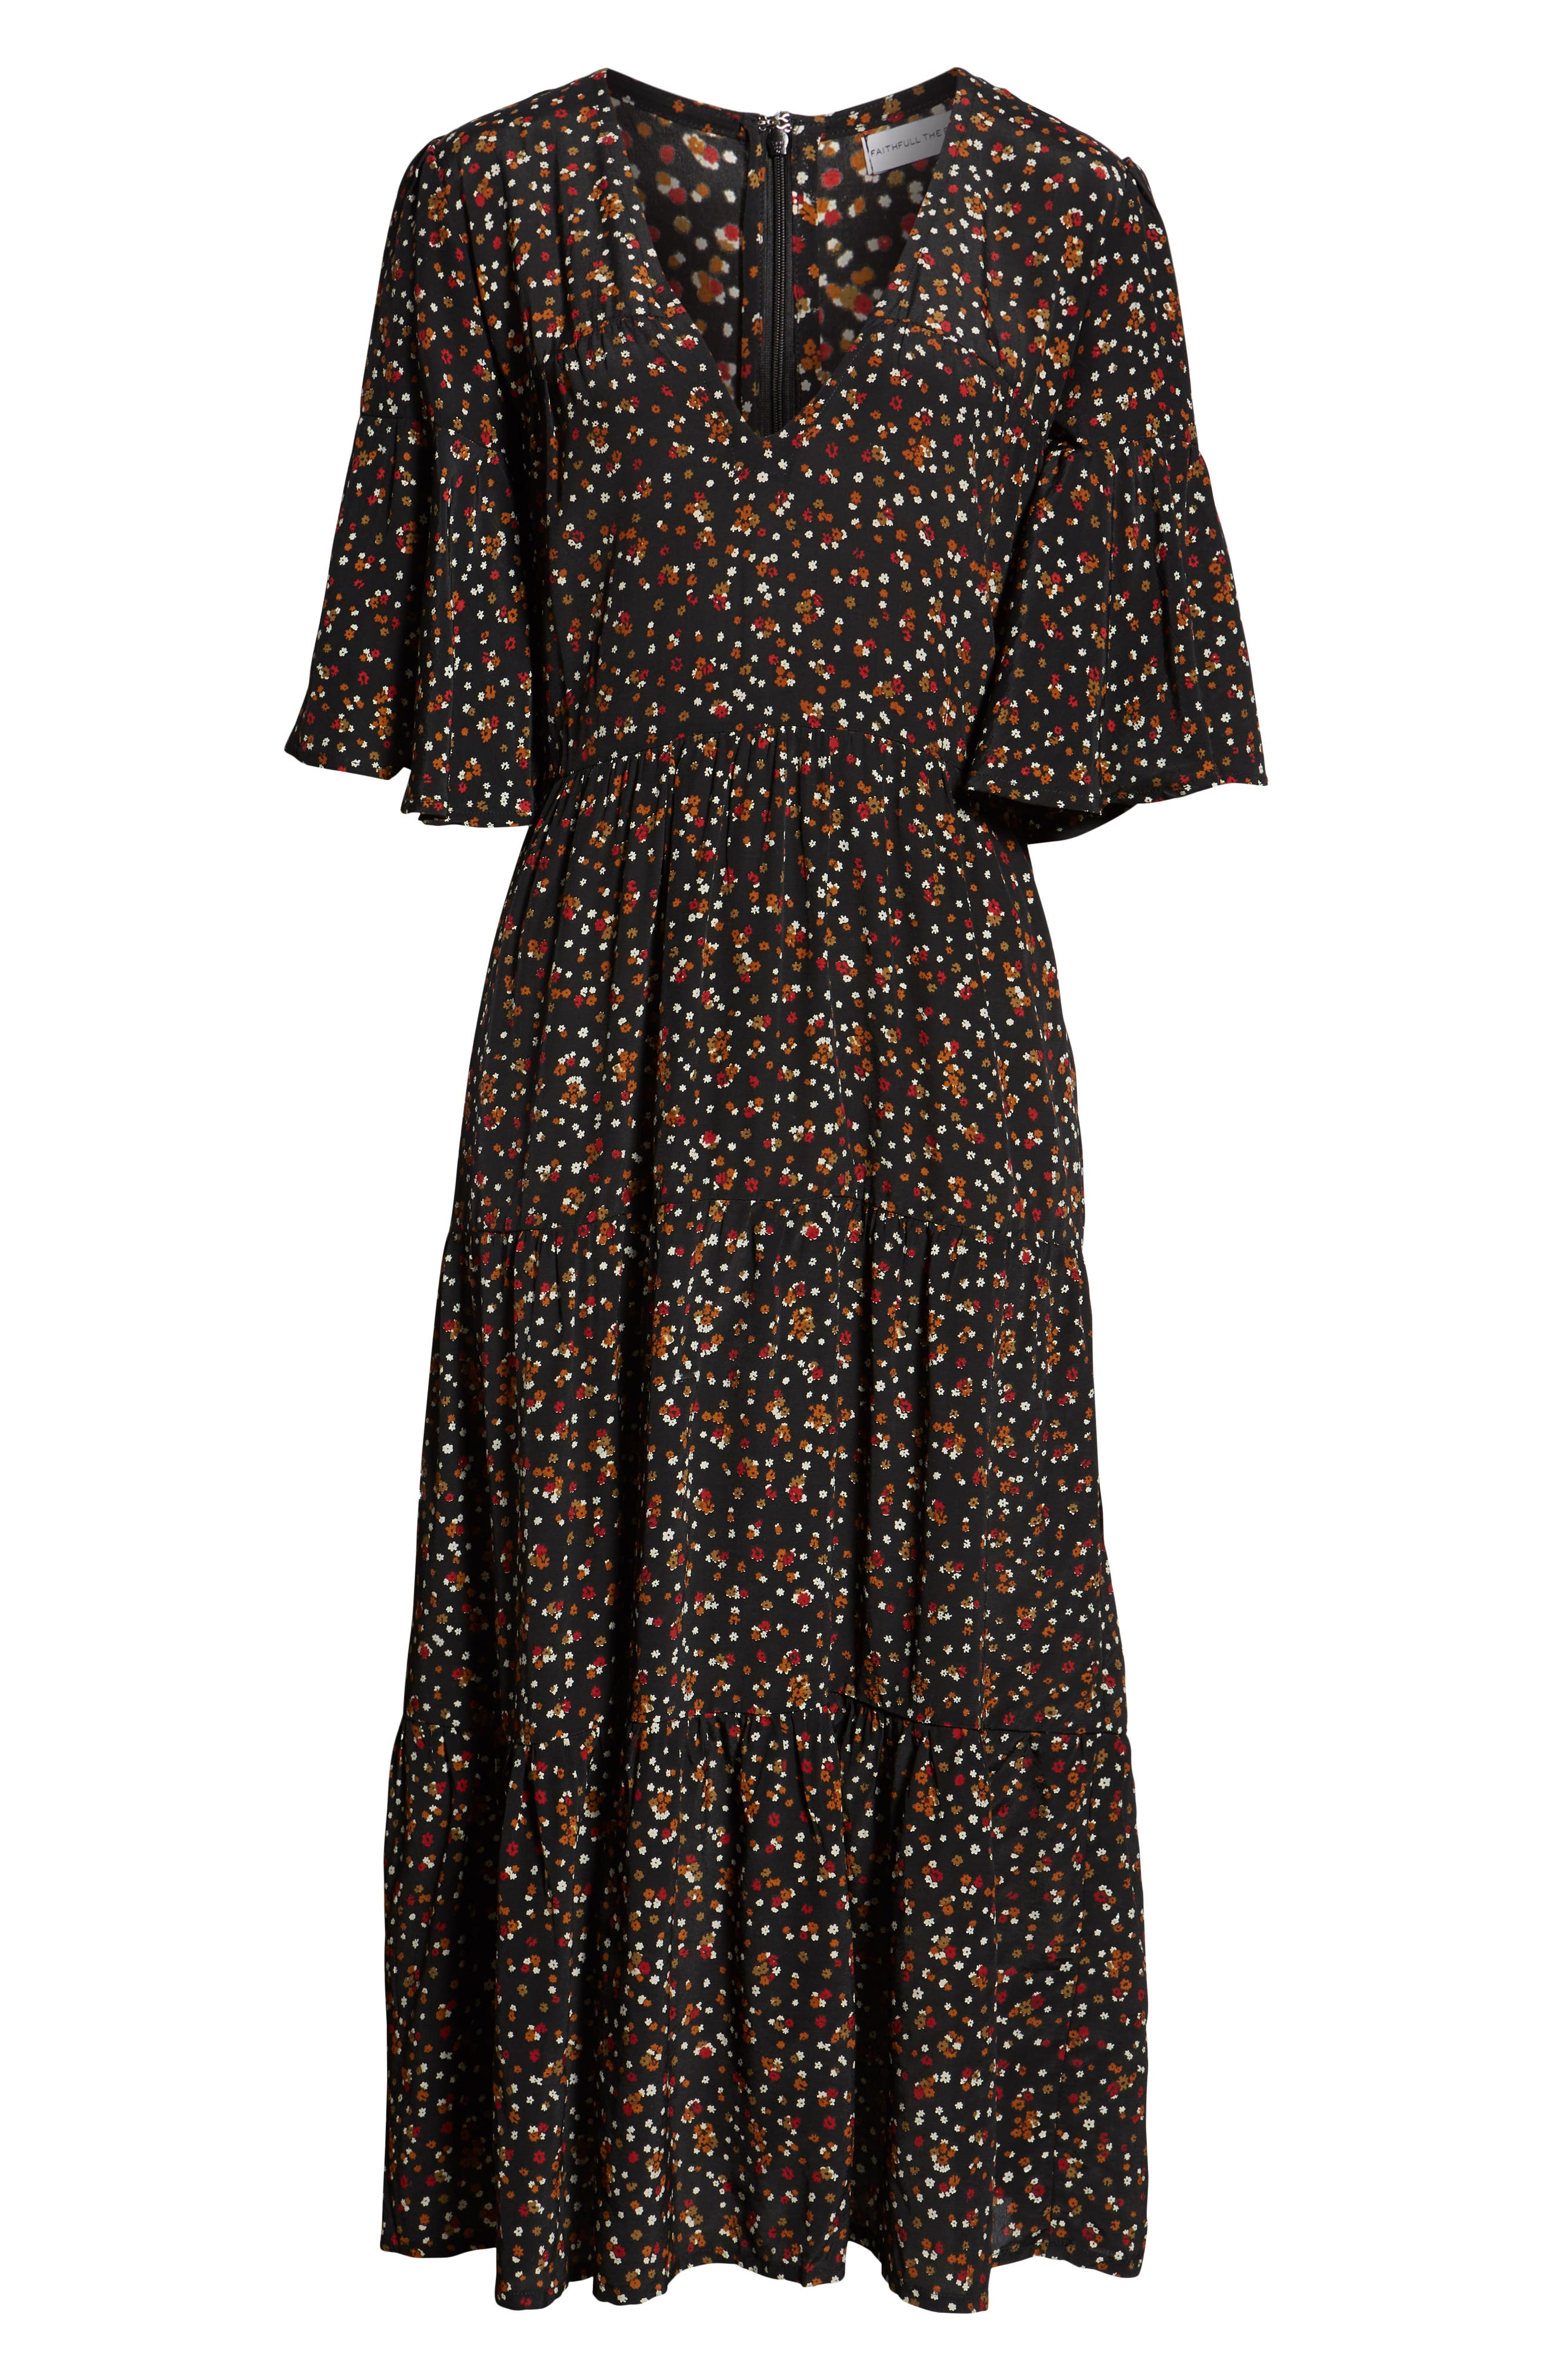 Melia Ditsy Floral Print Midi Dress,                             Alternate thumbnail 4, color,                             001